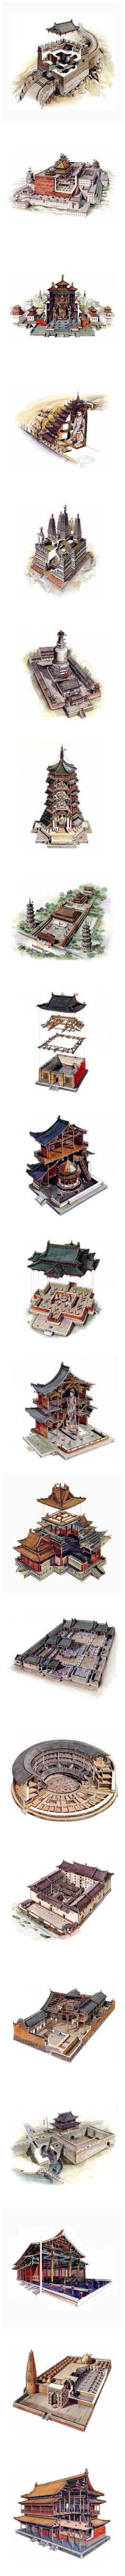 Traditional Chinese Architecture http://www.visiontimes.com/2015/04/05/see-the-unique-anatomy-of-these-10-classical-chinese-buildings.html                                                                                                                                                     More #classicalarchitecture #chinesearchitecture